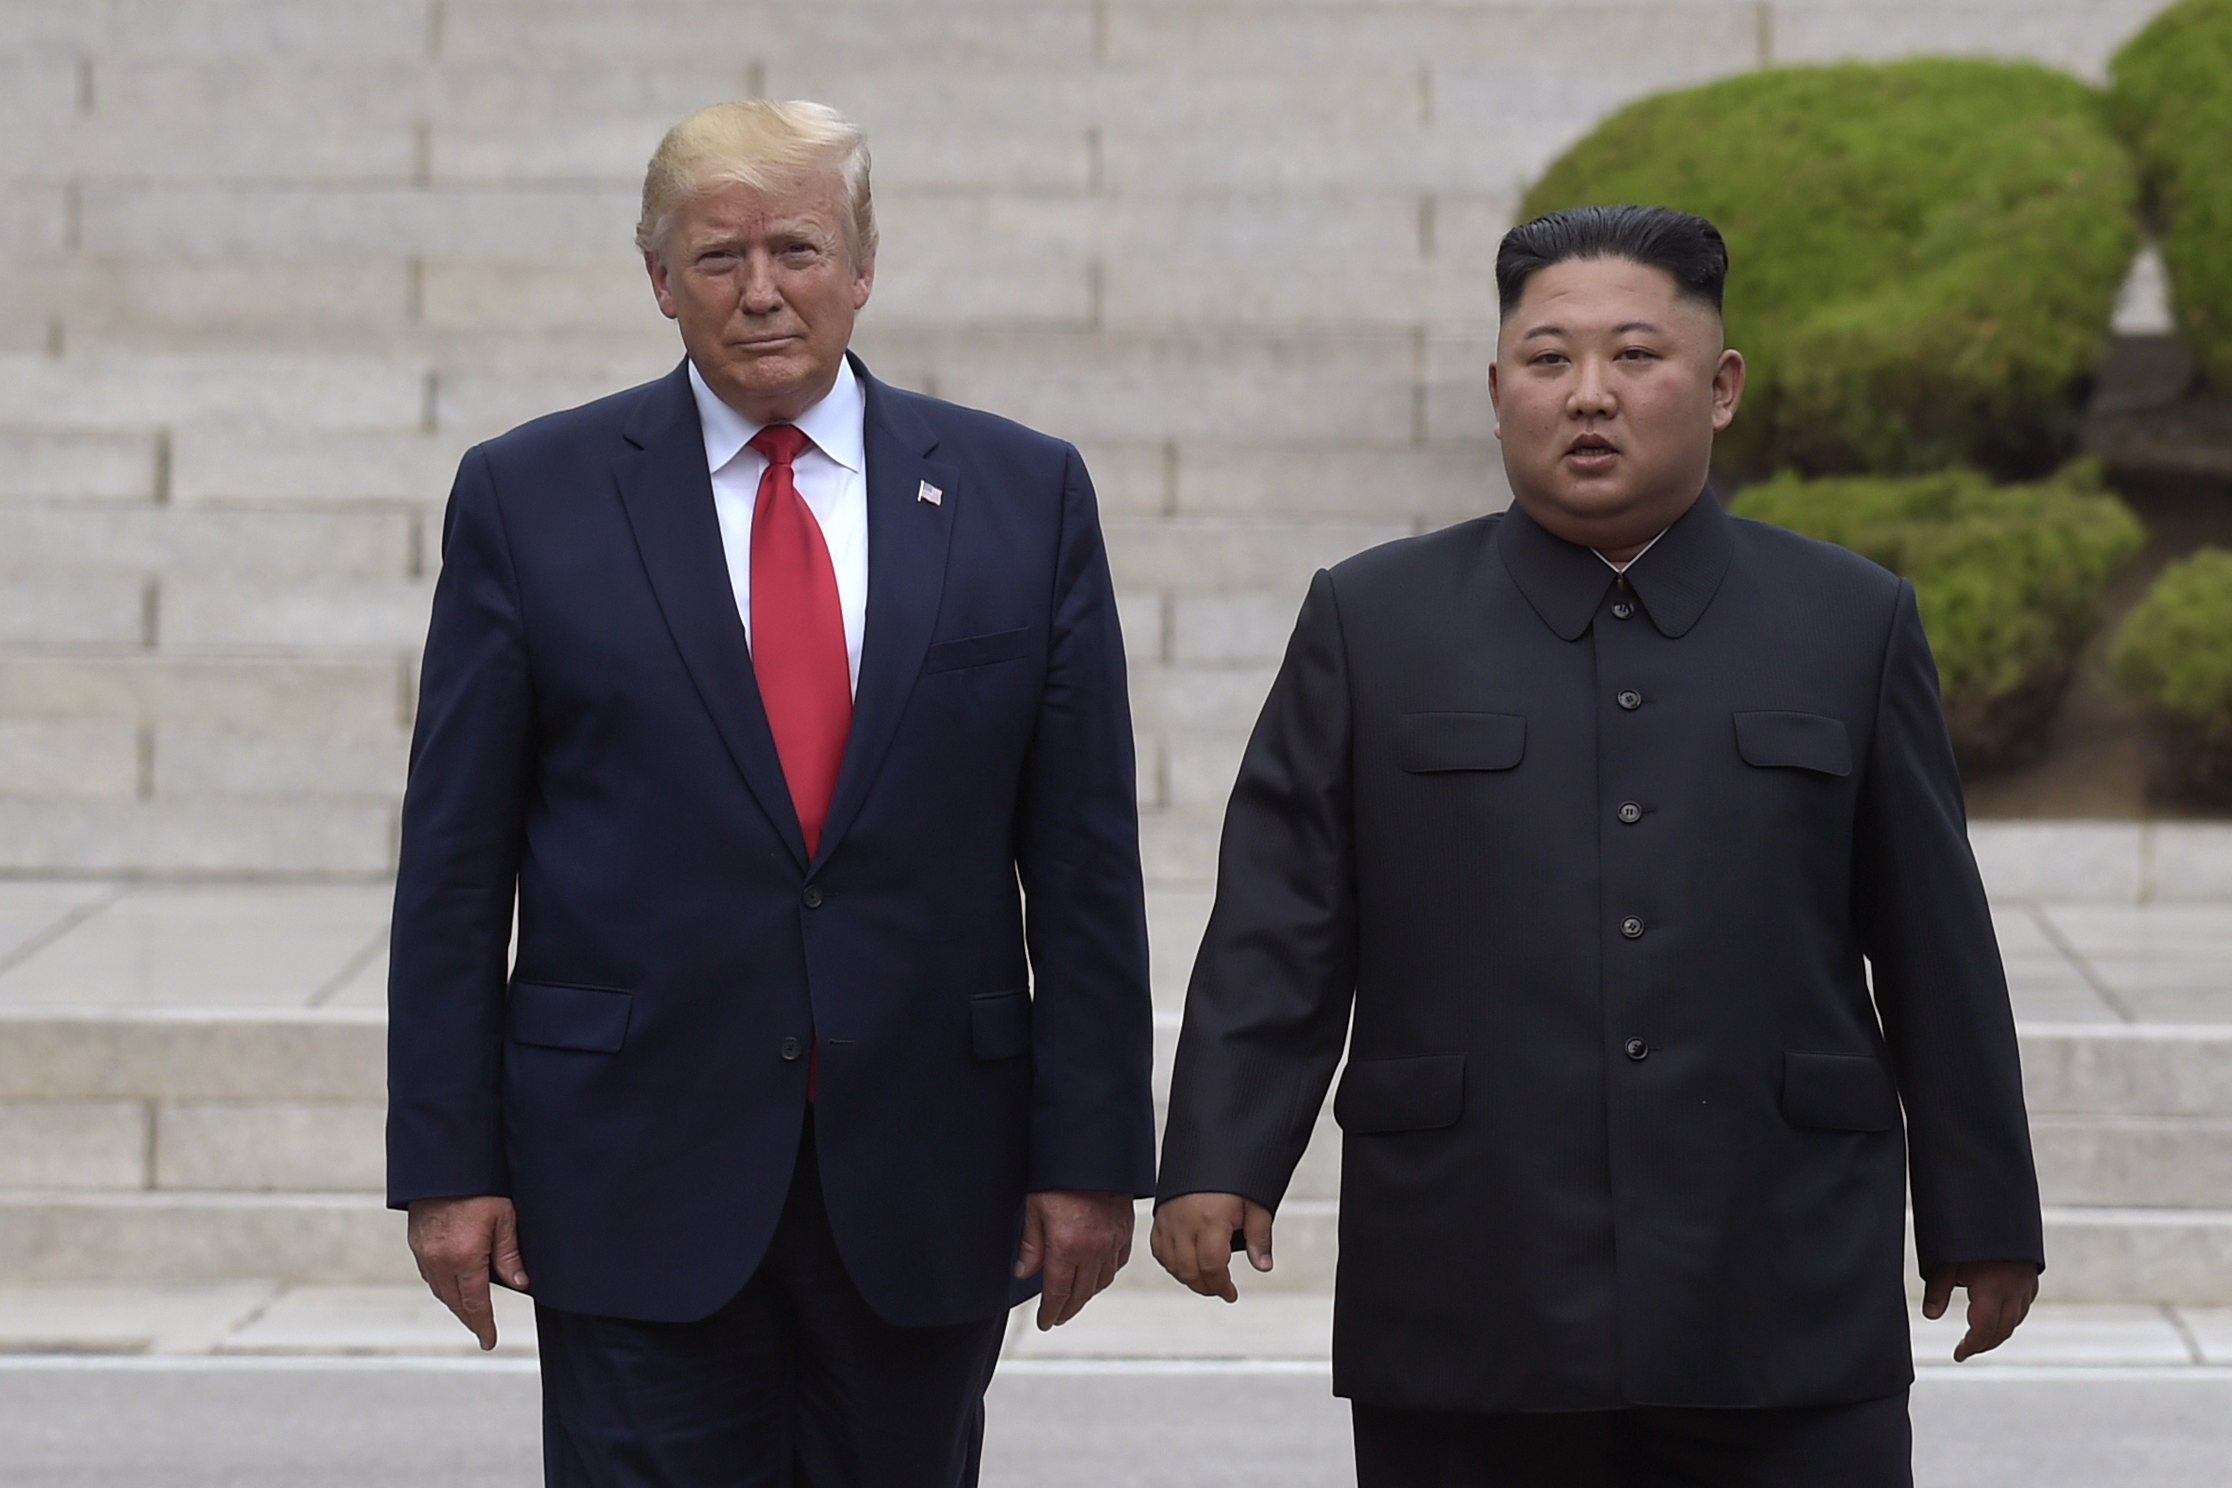 U.S. President Donald Trump, left, meets with North Korean leader Kim Jong Un at the North Korean side of the border at the village of Panmunjom in Demilitarized Zone on June 30, 2019. A senior North Korean diplomat on Tuesday, Oct. 1, 2019, says North Korea and the United States have agreed to resume nuclear negotiations on Oct. 5 following a months-long stalemate over withdrawal of sanctions in exchange for disarmament. (AP Photo/Susan Walsh, File)